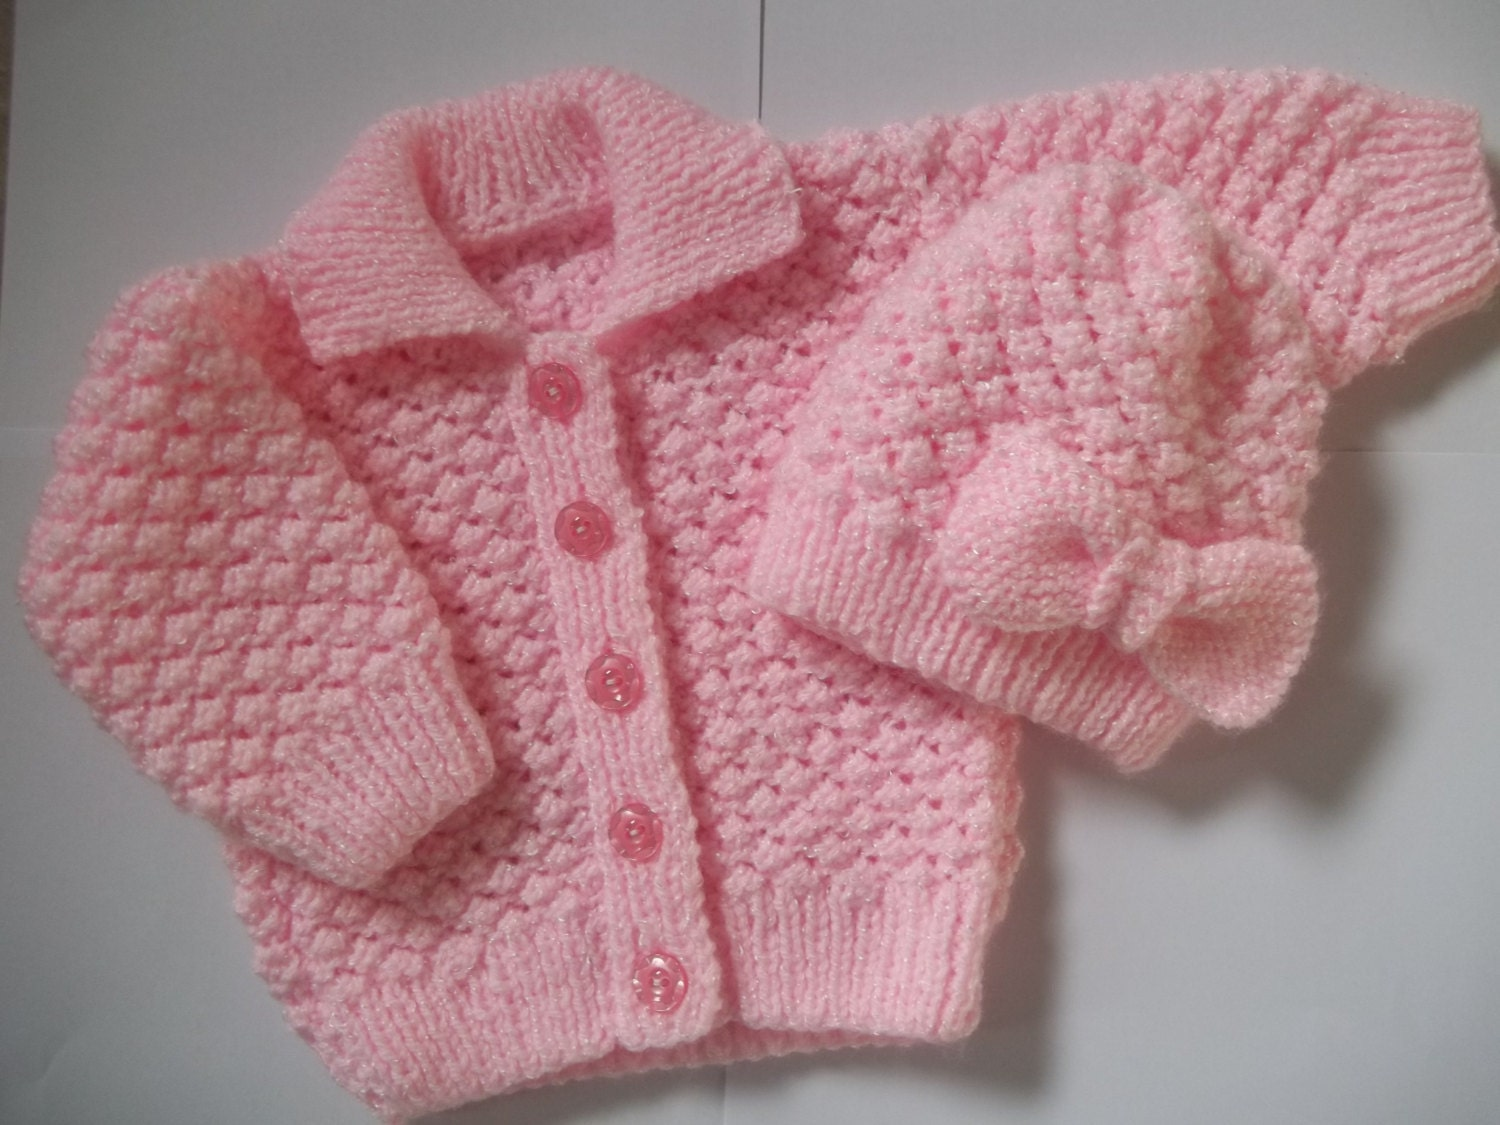 knitting pattern 17 pdf baby girls jacket coat cardigan. Black Bedroom Furniture Sets. Home Design Ideas